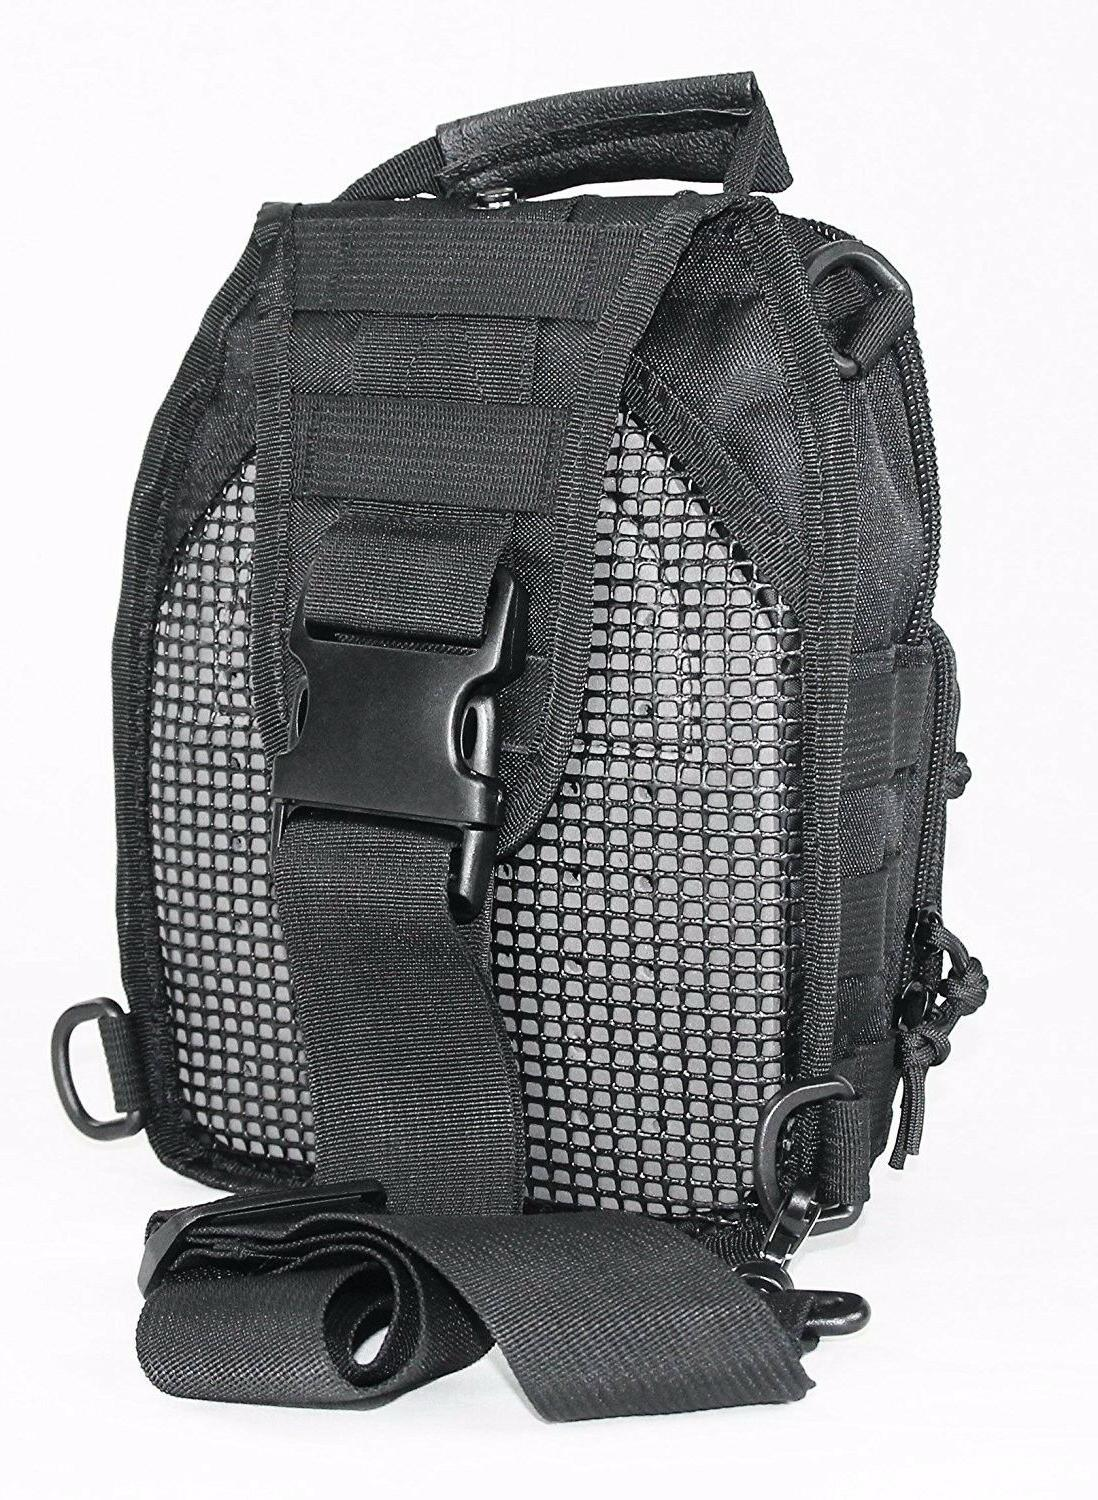 Small Compact Sling Back Pack Camera